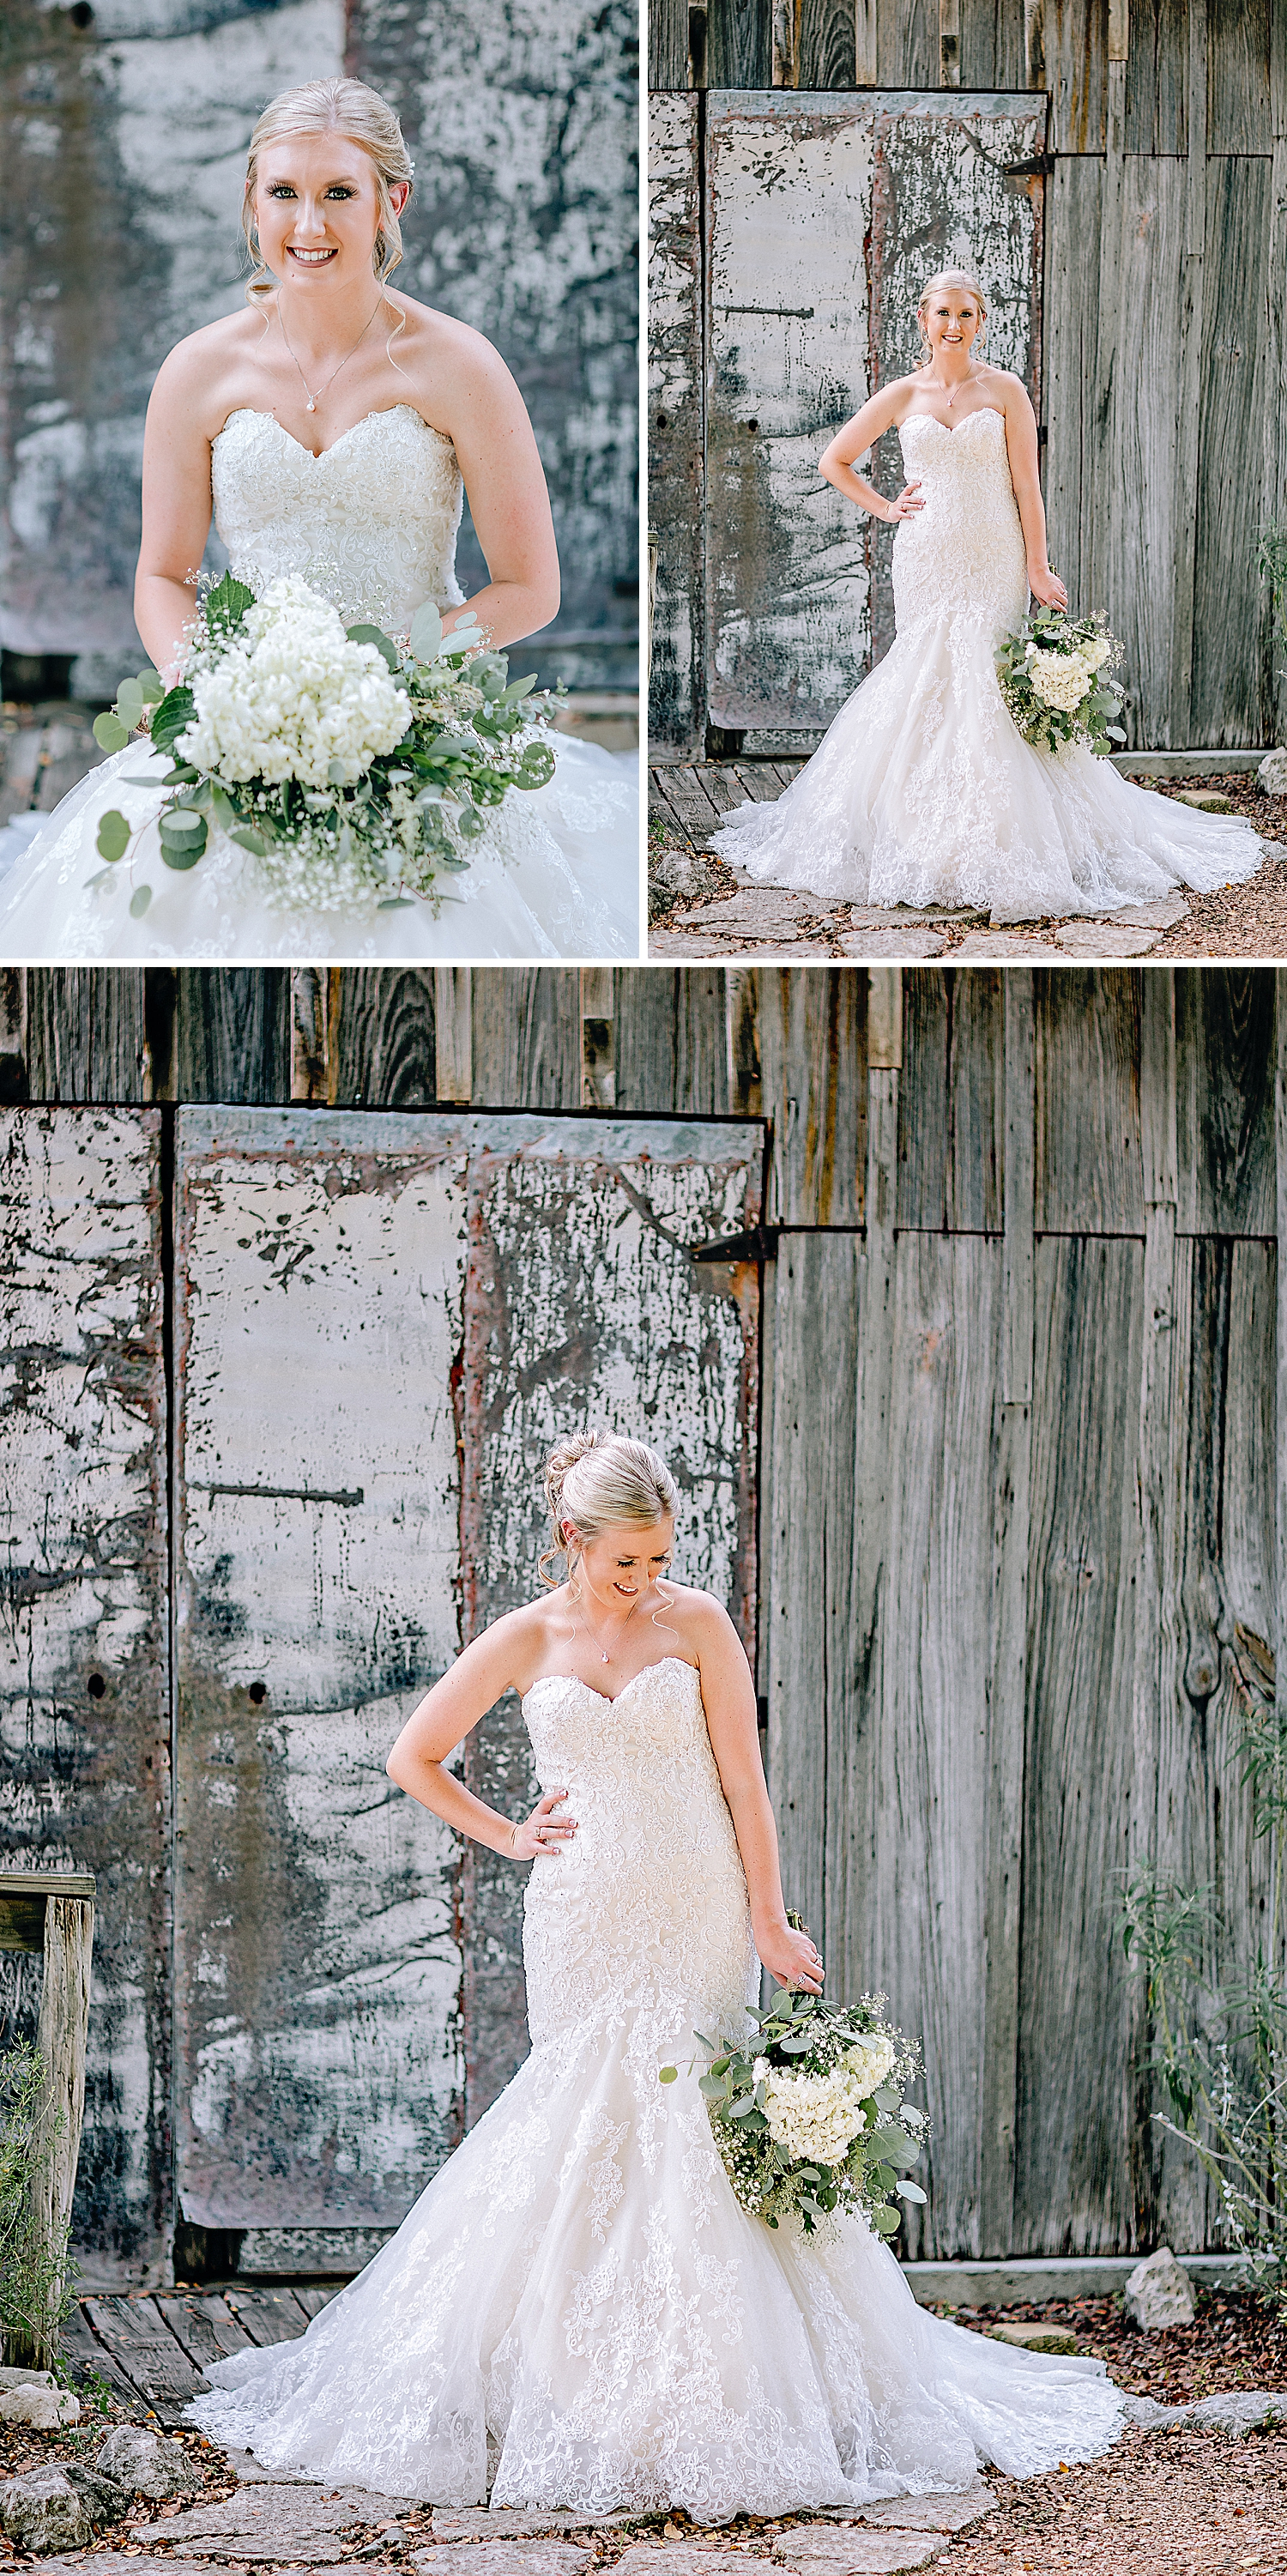 Carly-Barton-Photography-Bridal-Photos-Gruene-Rustic-New-Braunfels-Wedding-Photographer_0002.jpg